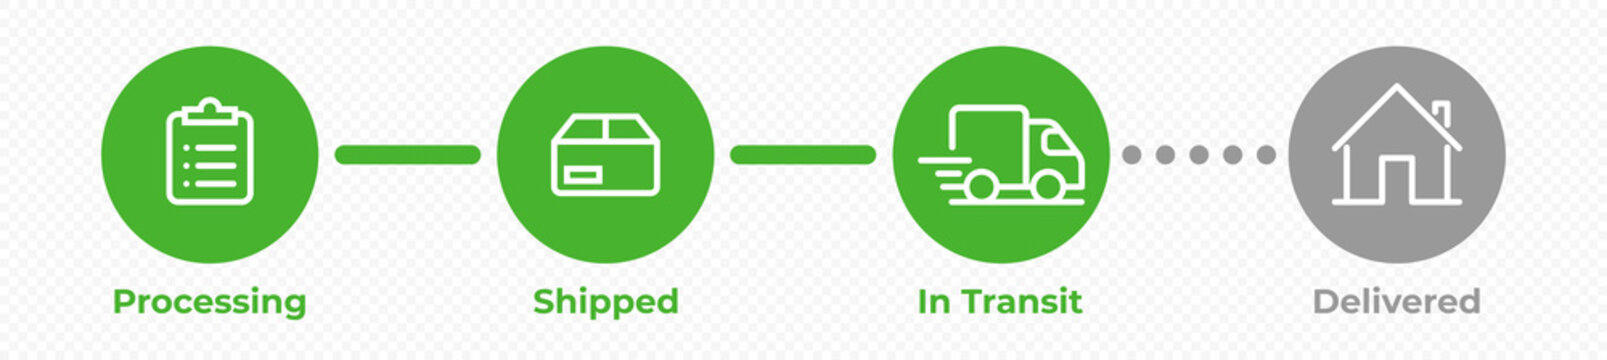 Order delivery status, post parcel package tracking vector icons. Order parcel processing bar, ship, in transit and delivery signs for express courier delivery app and web flat simple icons